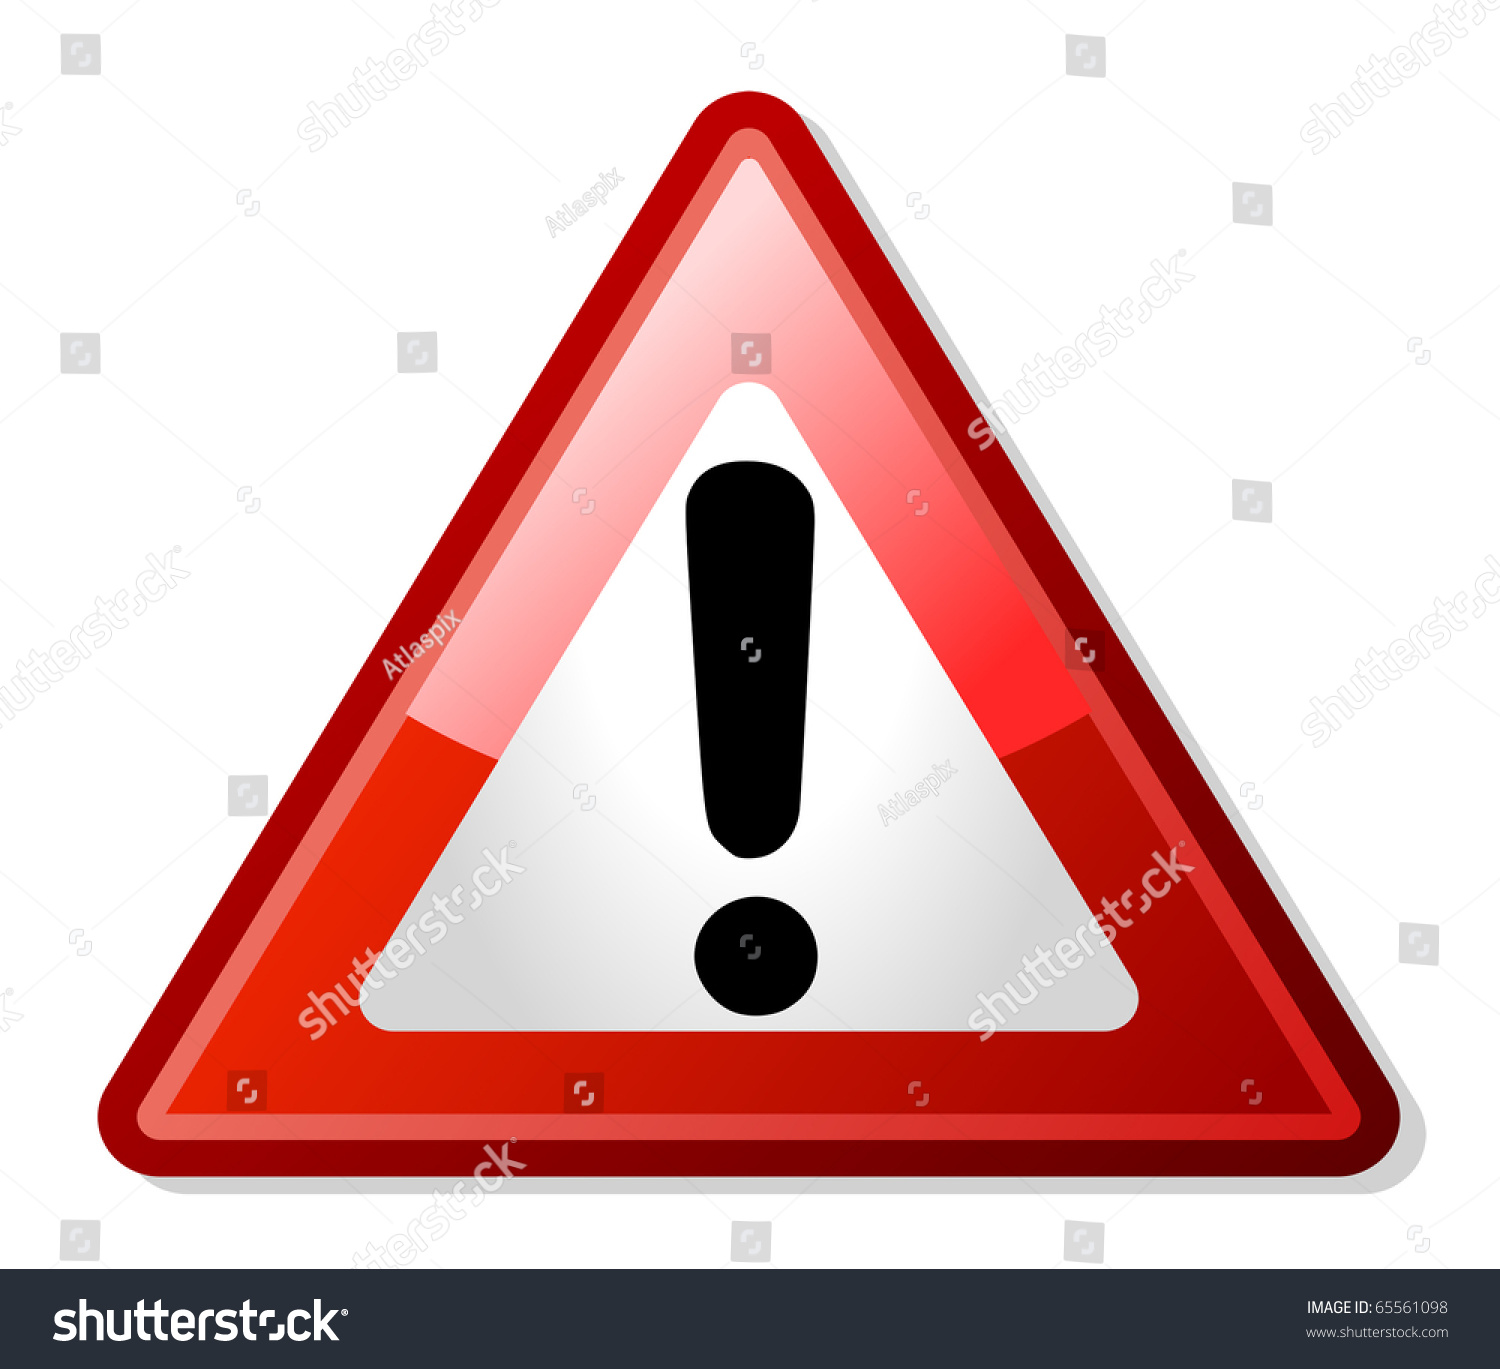 exclamation mark red triangle shaped warning stock